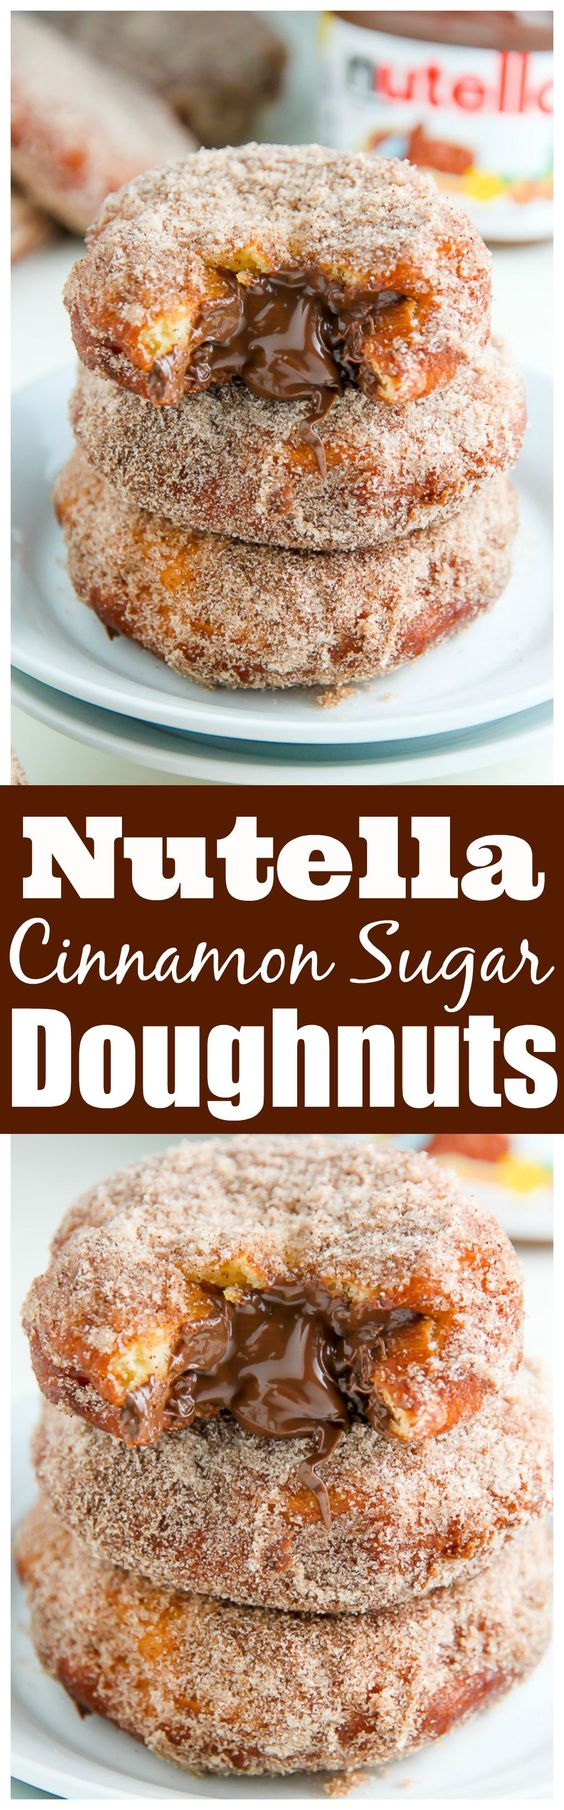 Homemade Cinnamon Sugar Doughnuts stuffed with a dollop of creamy Nutella. The definition of decadence!: